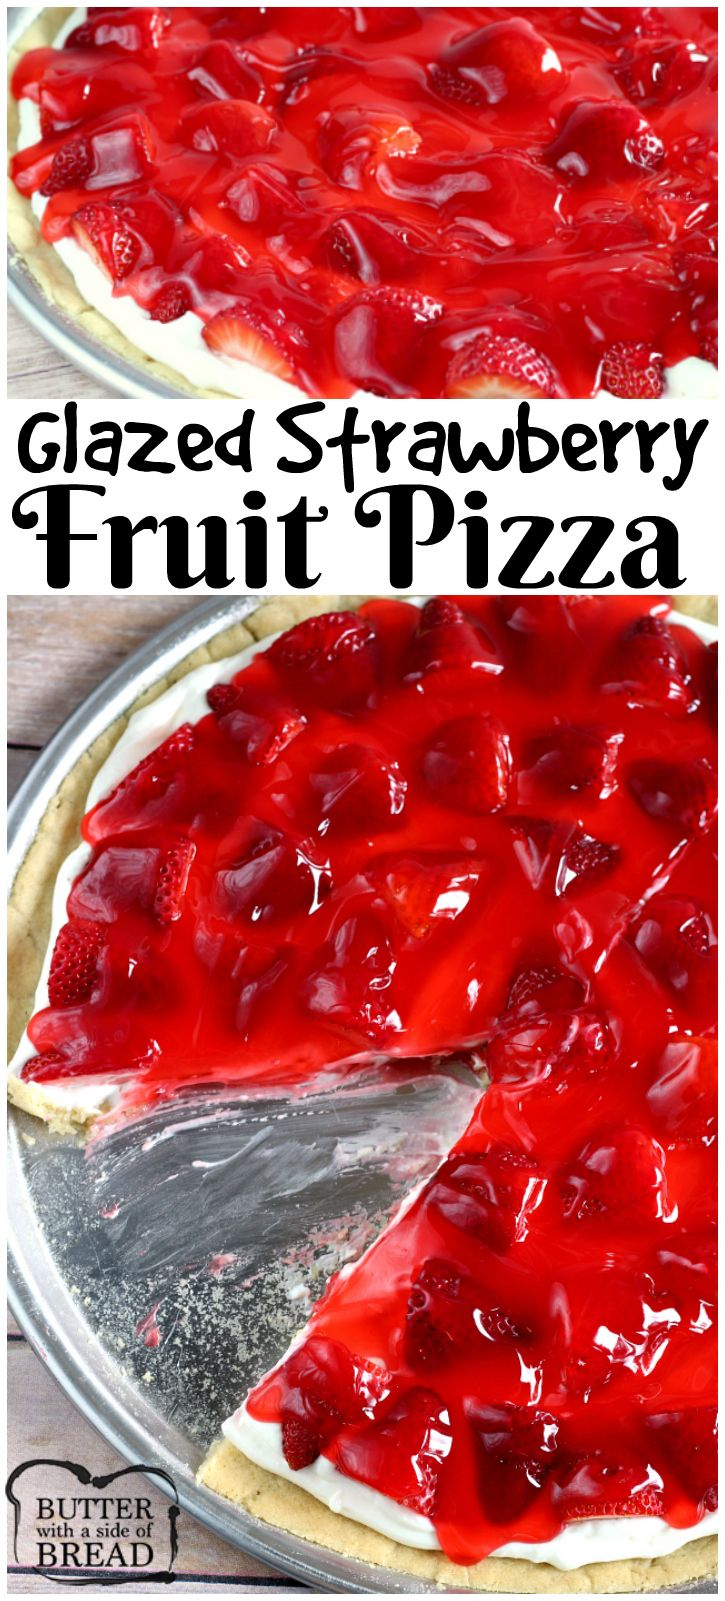 Easy dessert recipe for Glazed Strawberry Fruit Pizza - simple to make this incredible treat- you've got to try it!